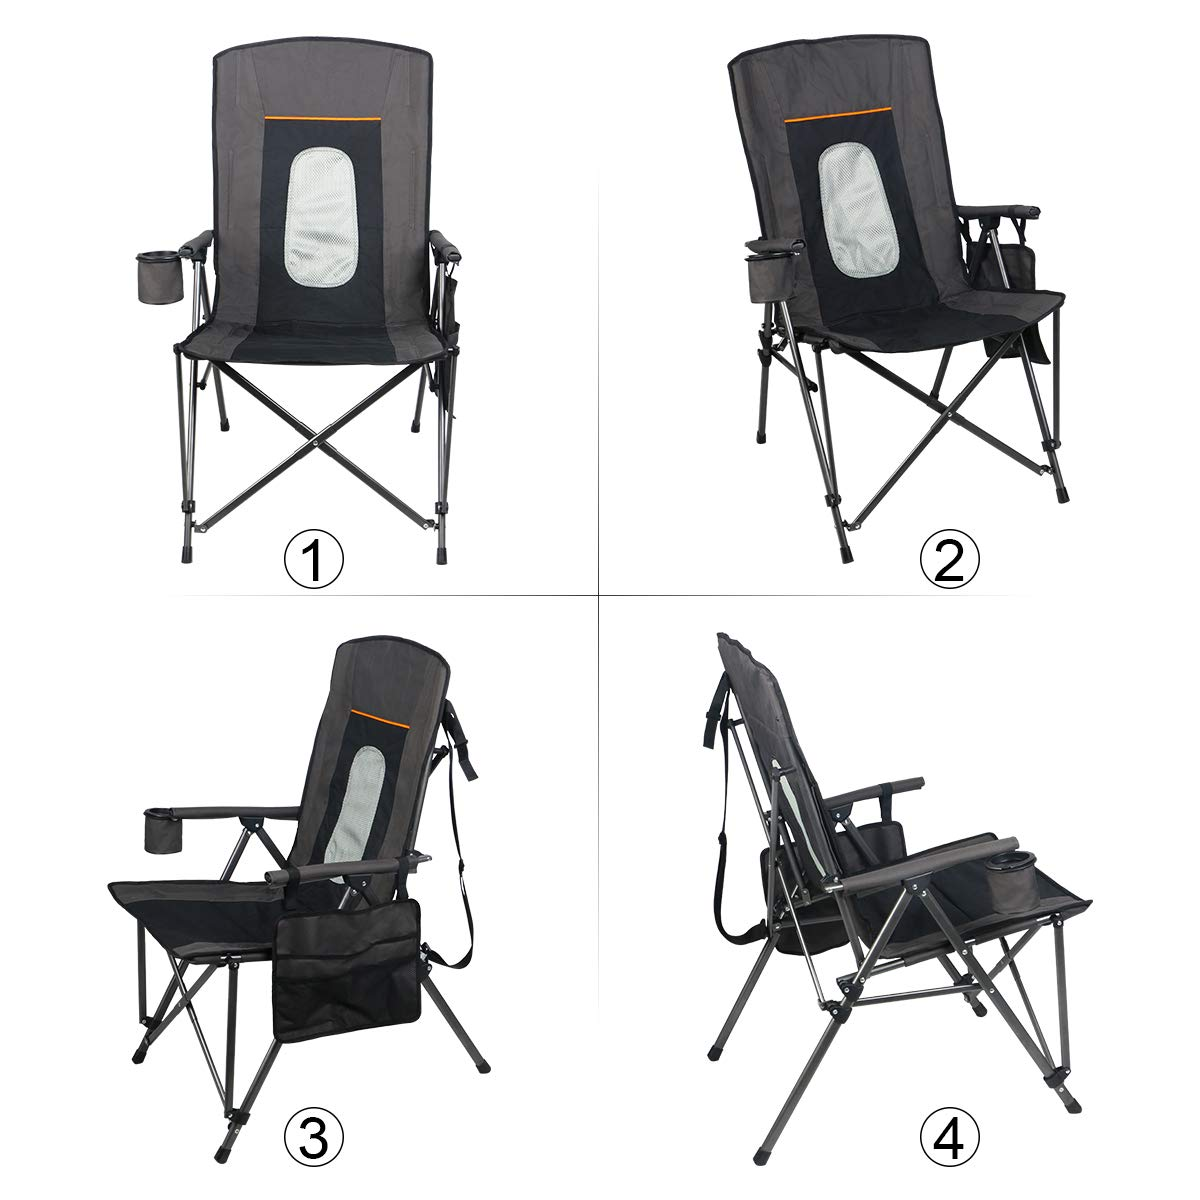 PORTAL Oversized Quad Folding Camping Chair High Back Cup Holder Hard Armrest Storage Pockets Carry Bag Included Support 300 lbs Hengfeng